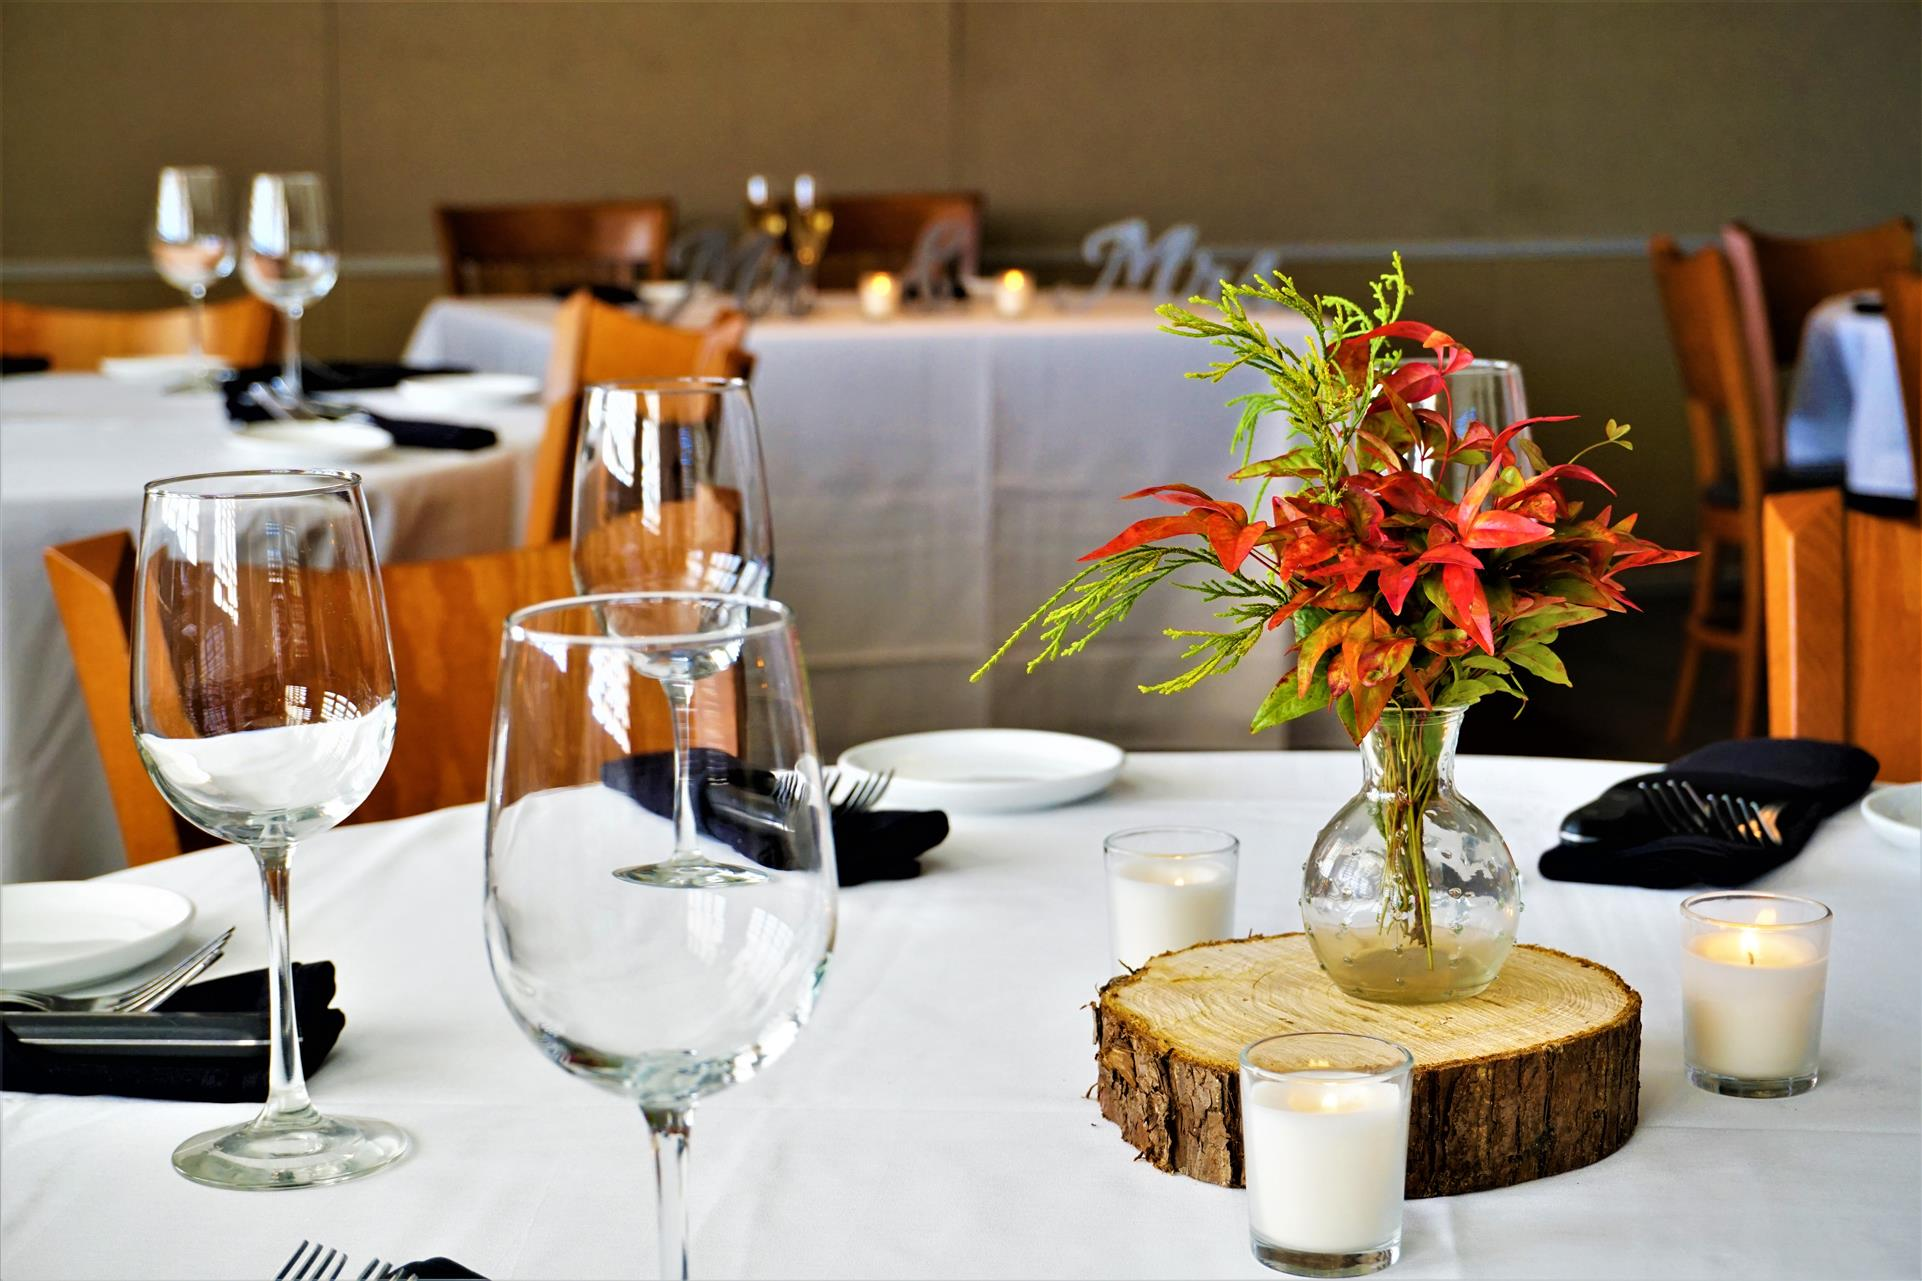 interior of restaurant white table cloths